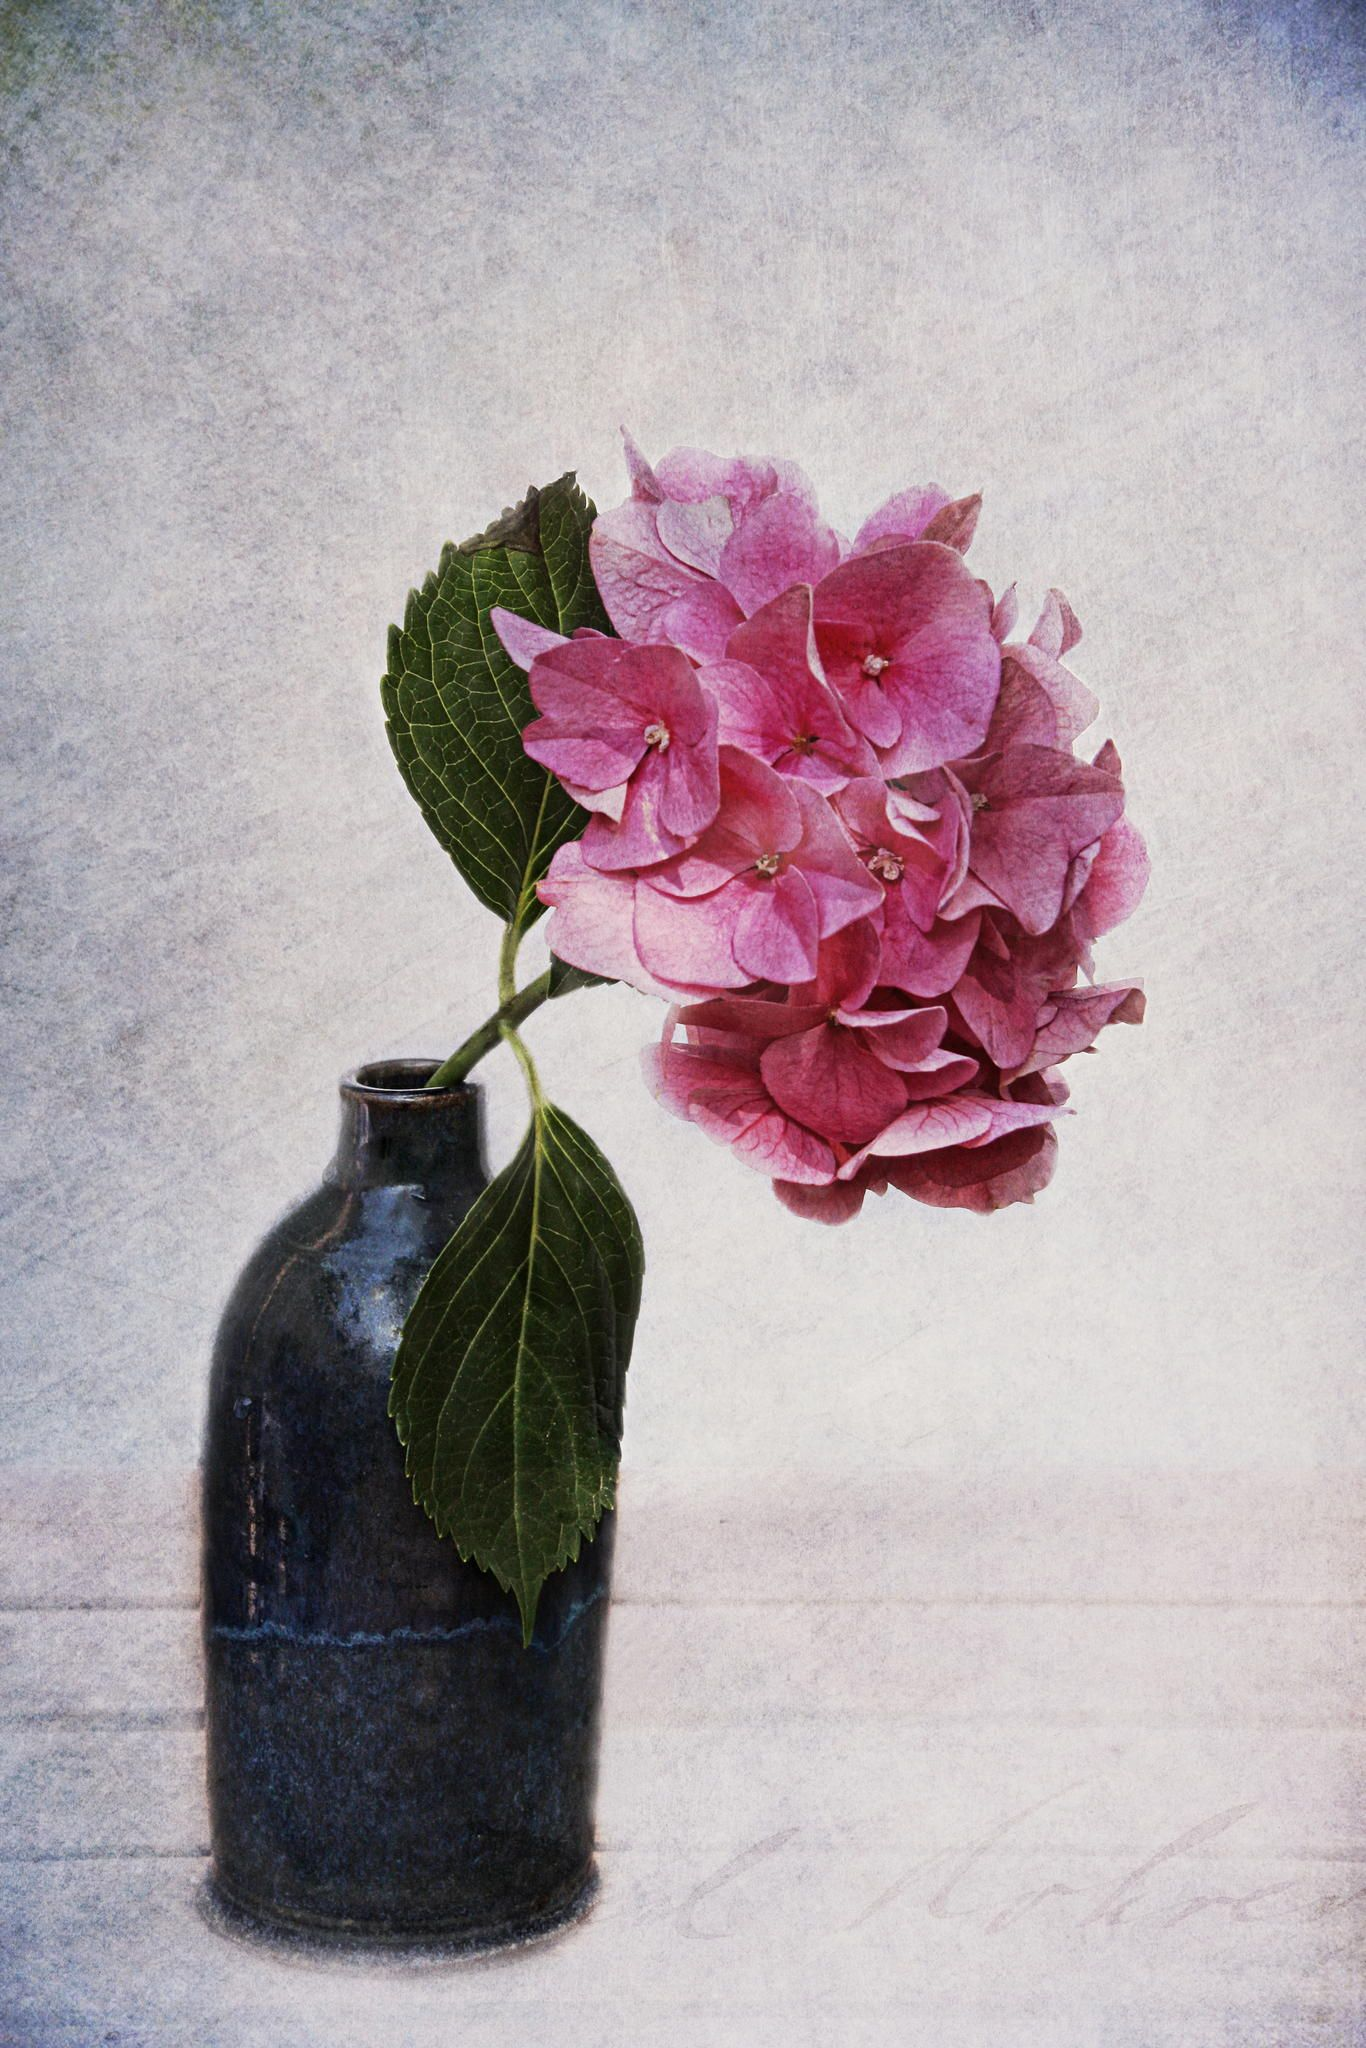 hydrangea by Claudia Moeckel on 500px